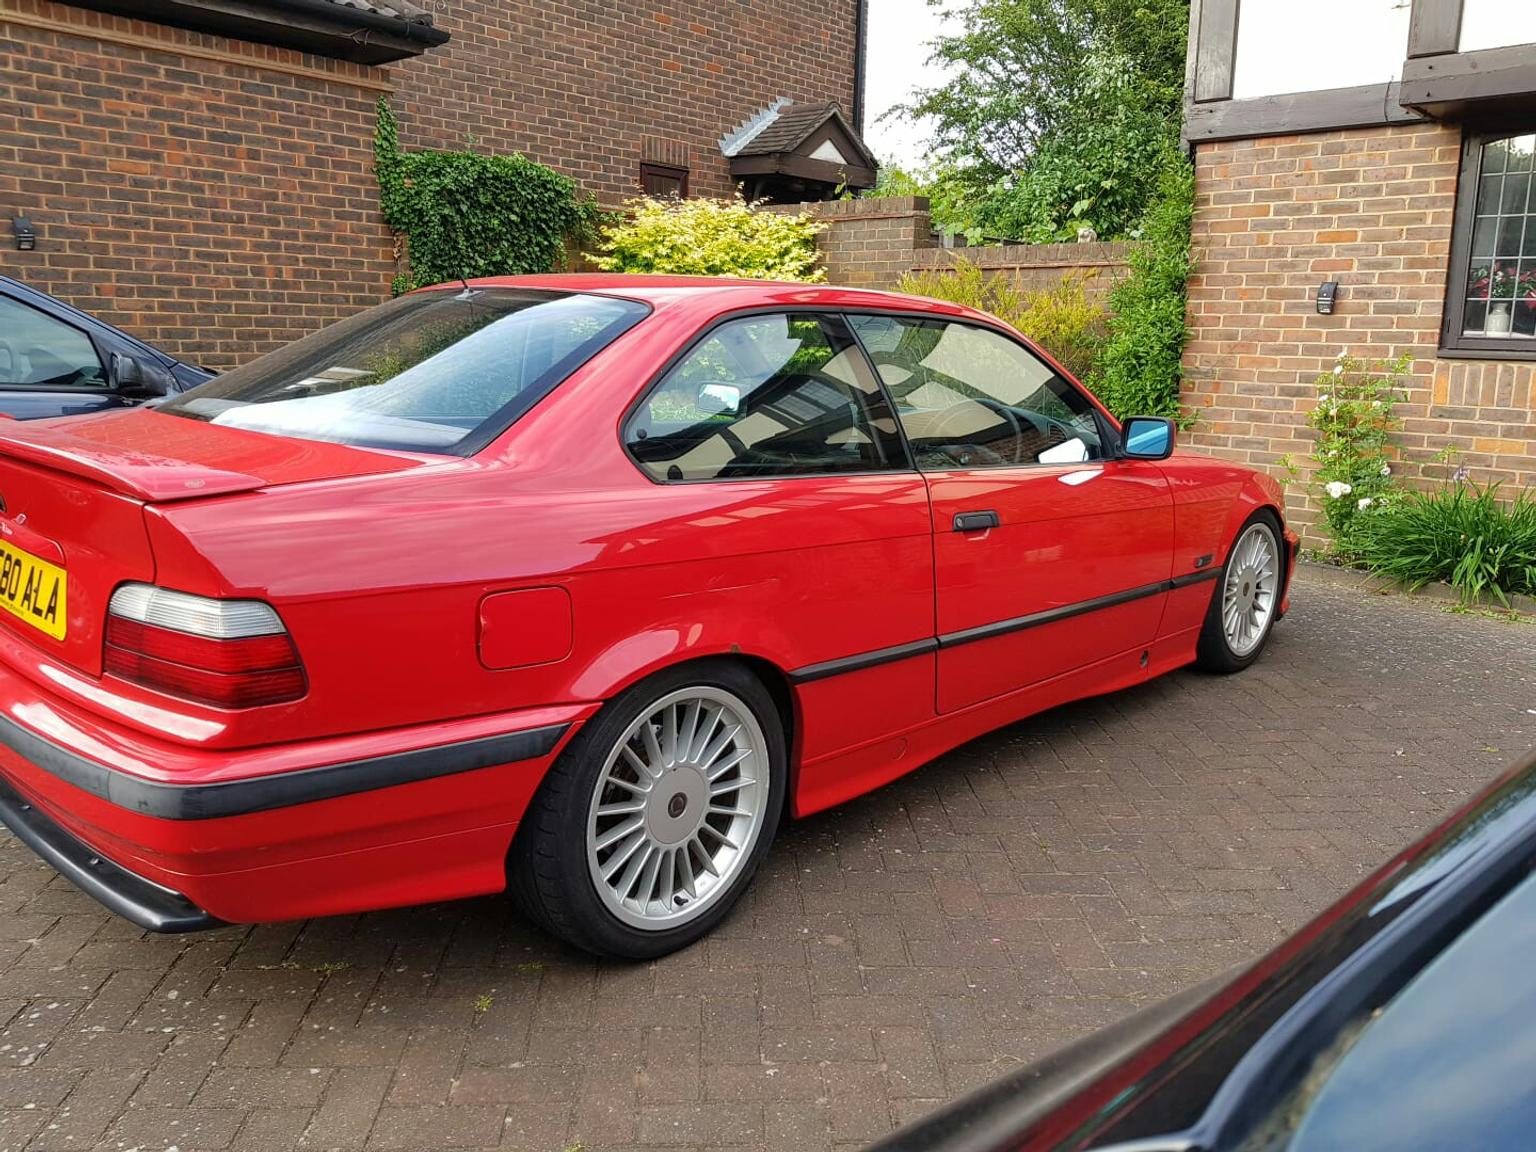 Bmw E36 Coupe For Sale Hell Rot Red In Co1 Colchester For 900 00 For Sale Shpock